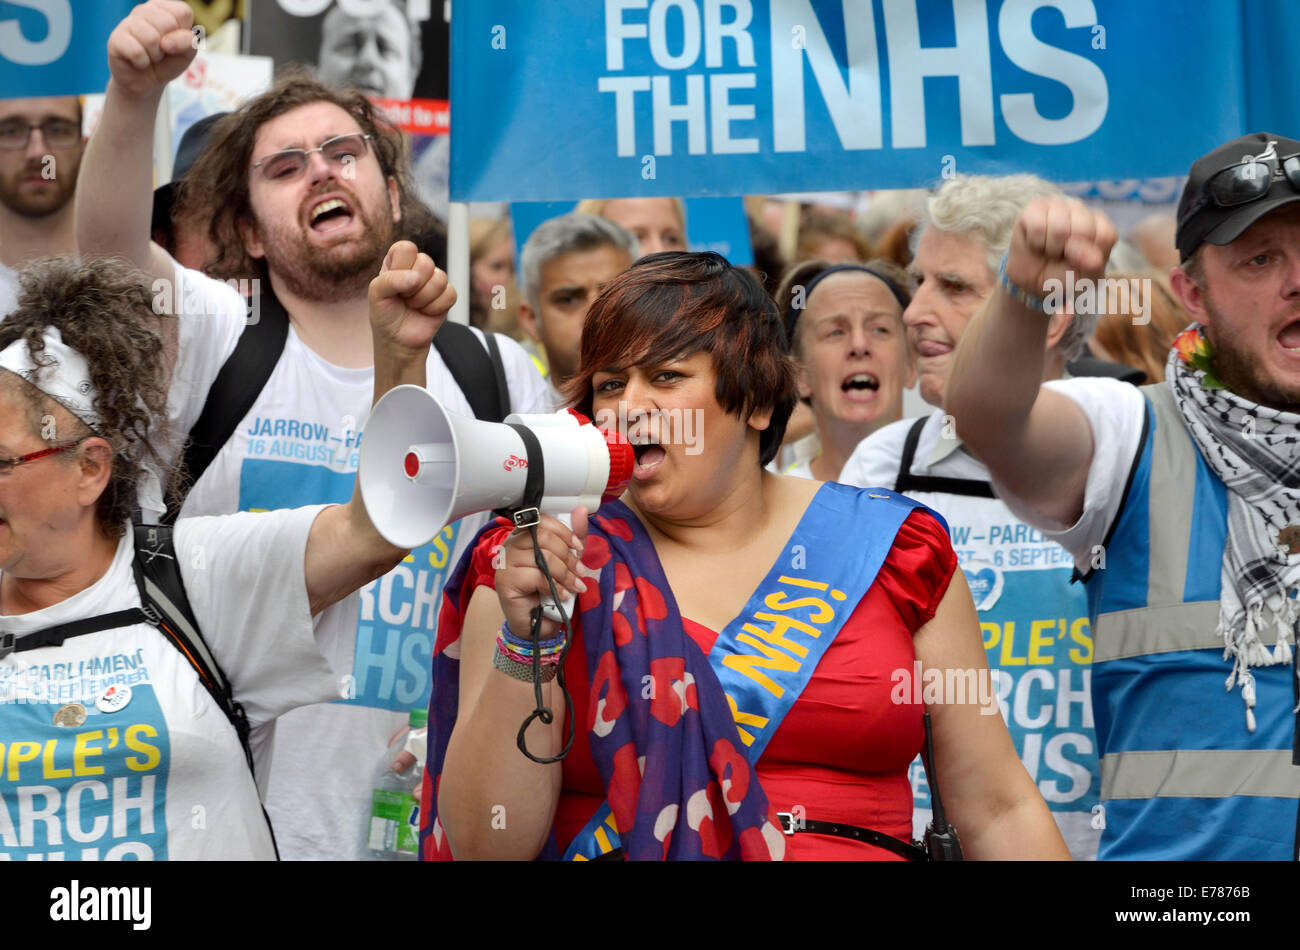 Rehana Azam at the head of the People's March for the NHS in London, 6th September, 2014 (Sadiq Khan behind) - Stock Image